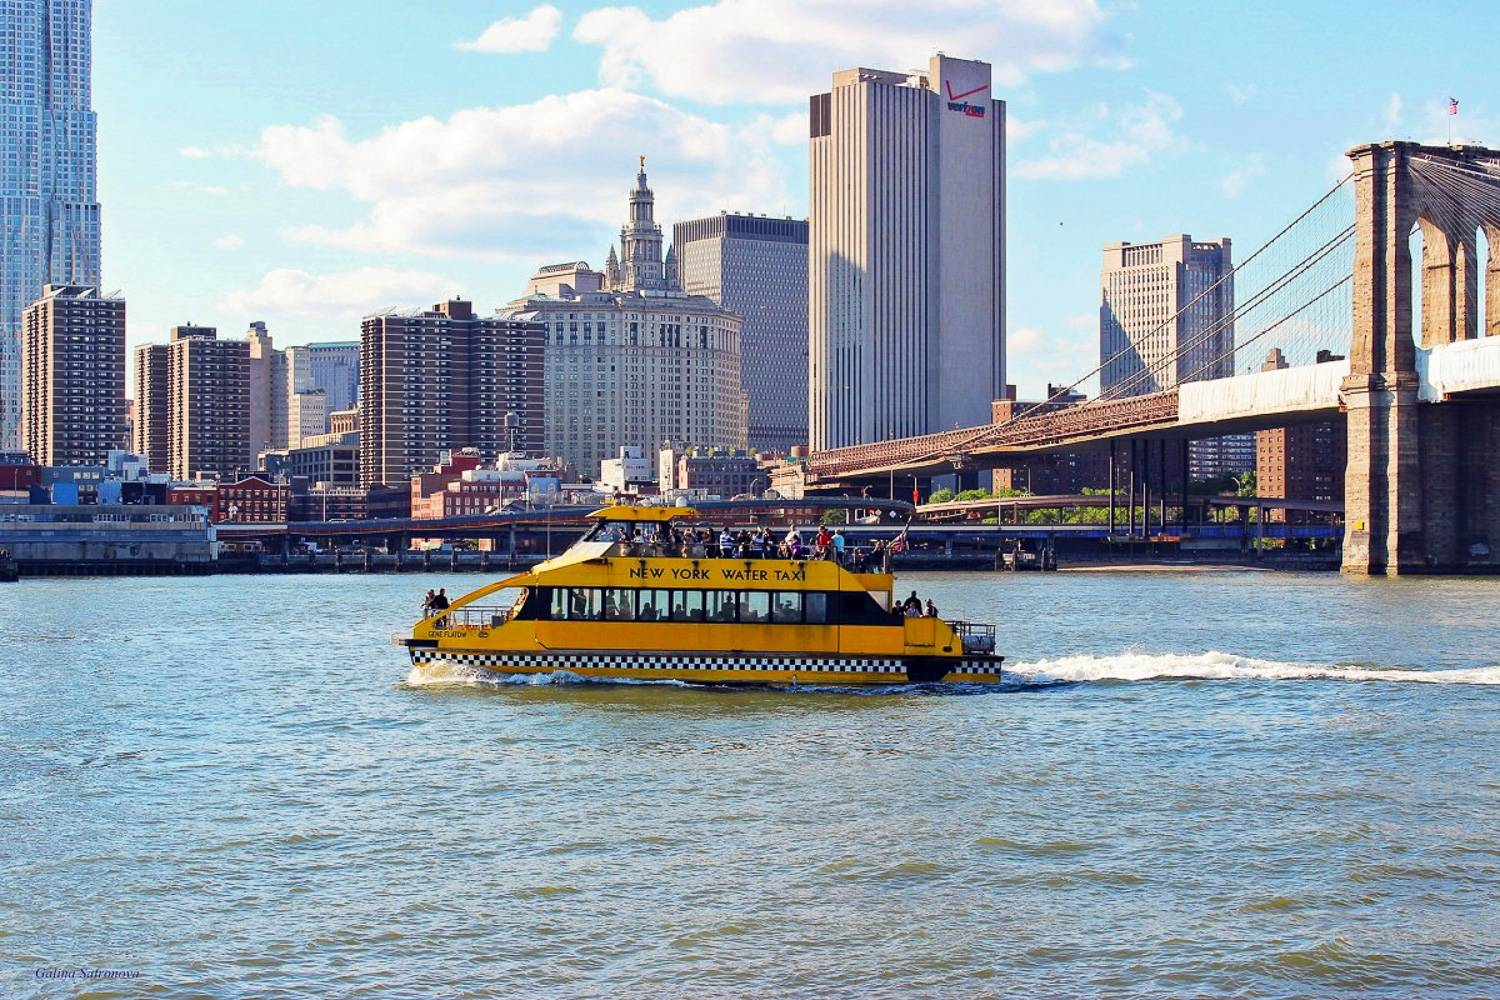 Image of a New York Water Taxi bringing tourists on a sightseeing cruise around Manhattan.